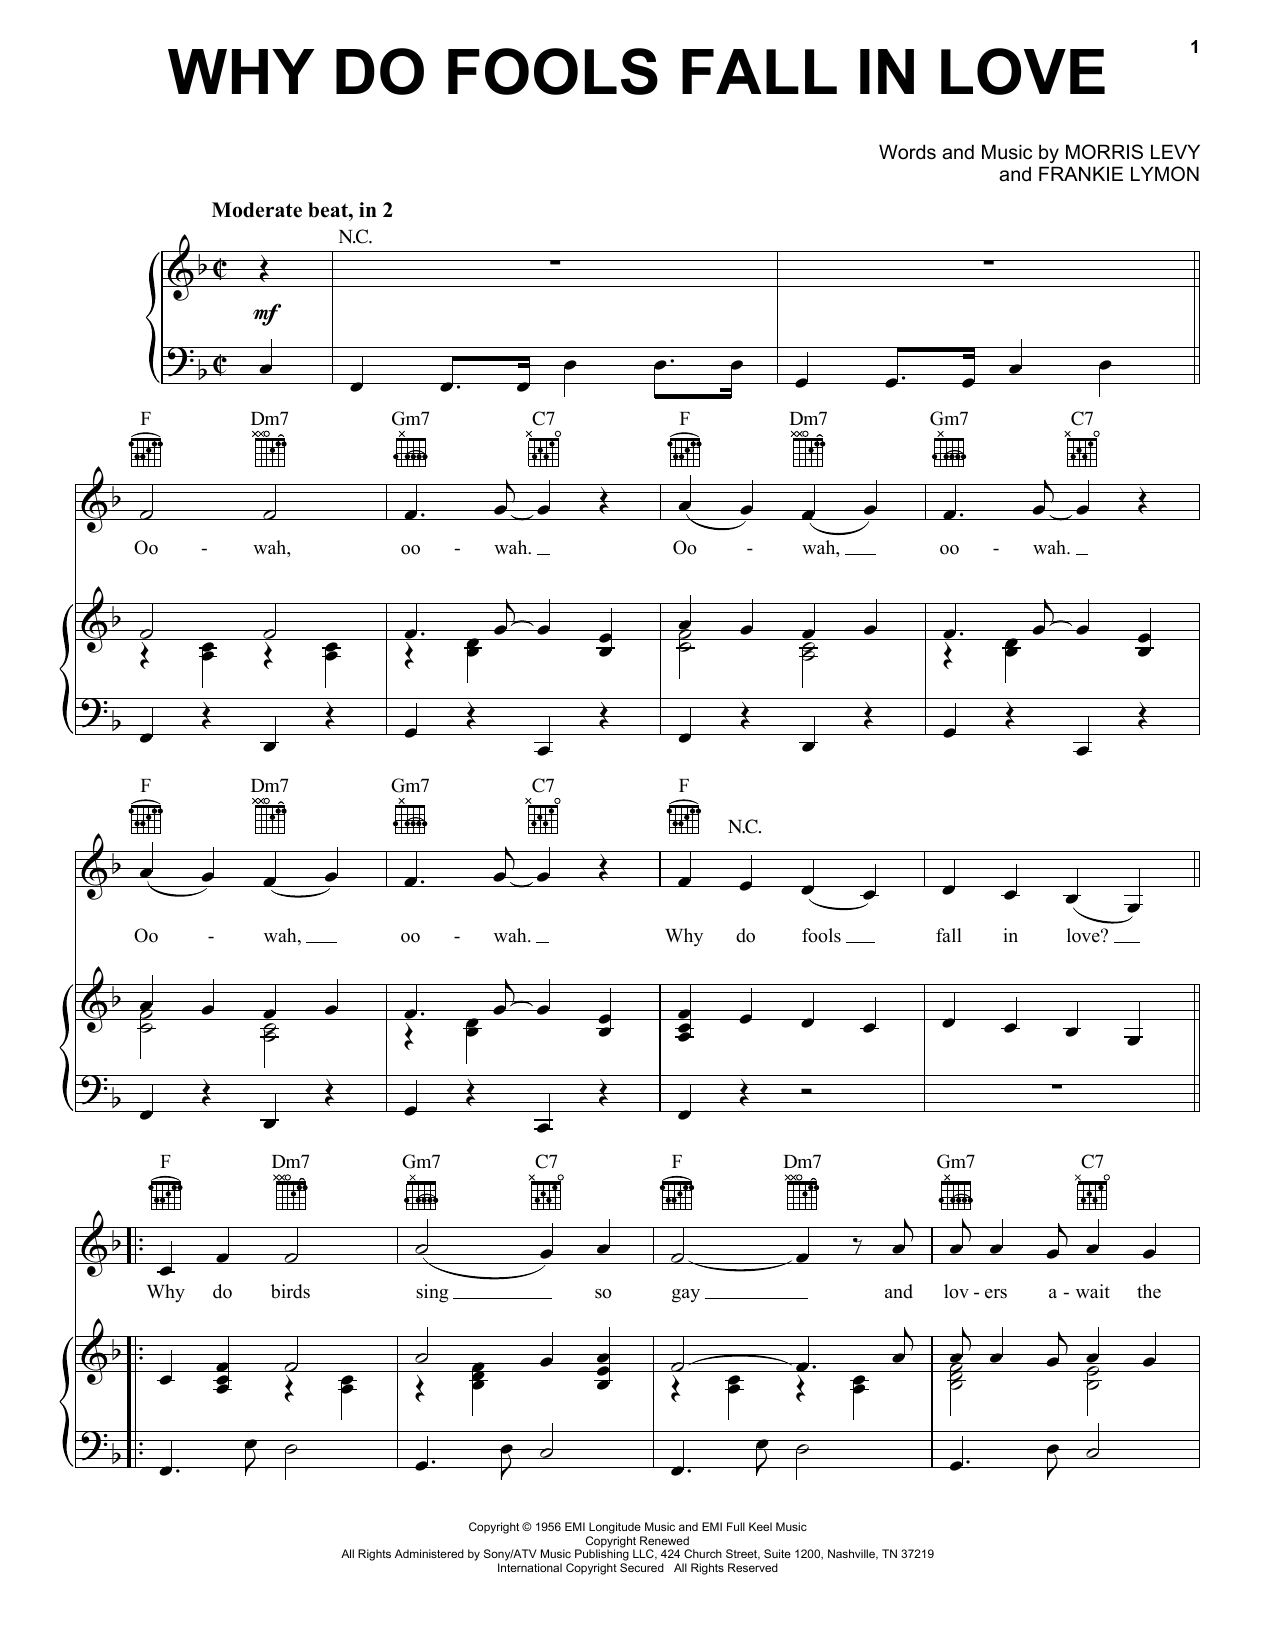 Frankie Lymon & The Teenagers Why Do Fools Fall In Love sheet music notes printable PDF score